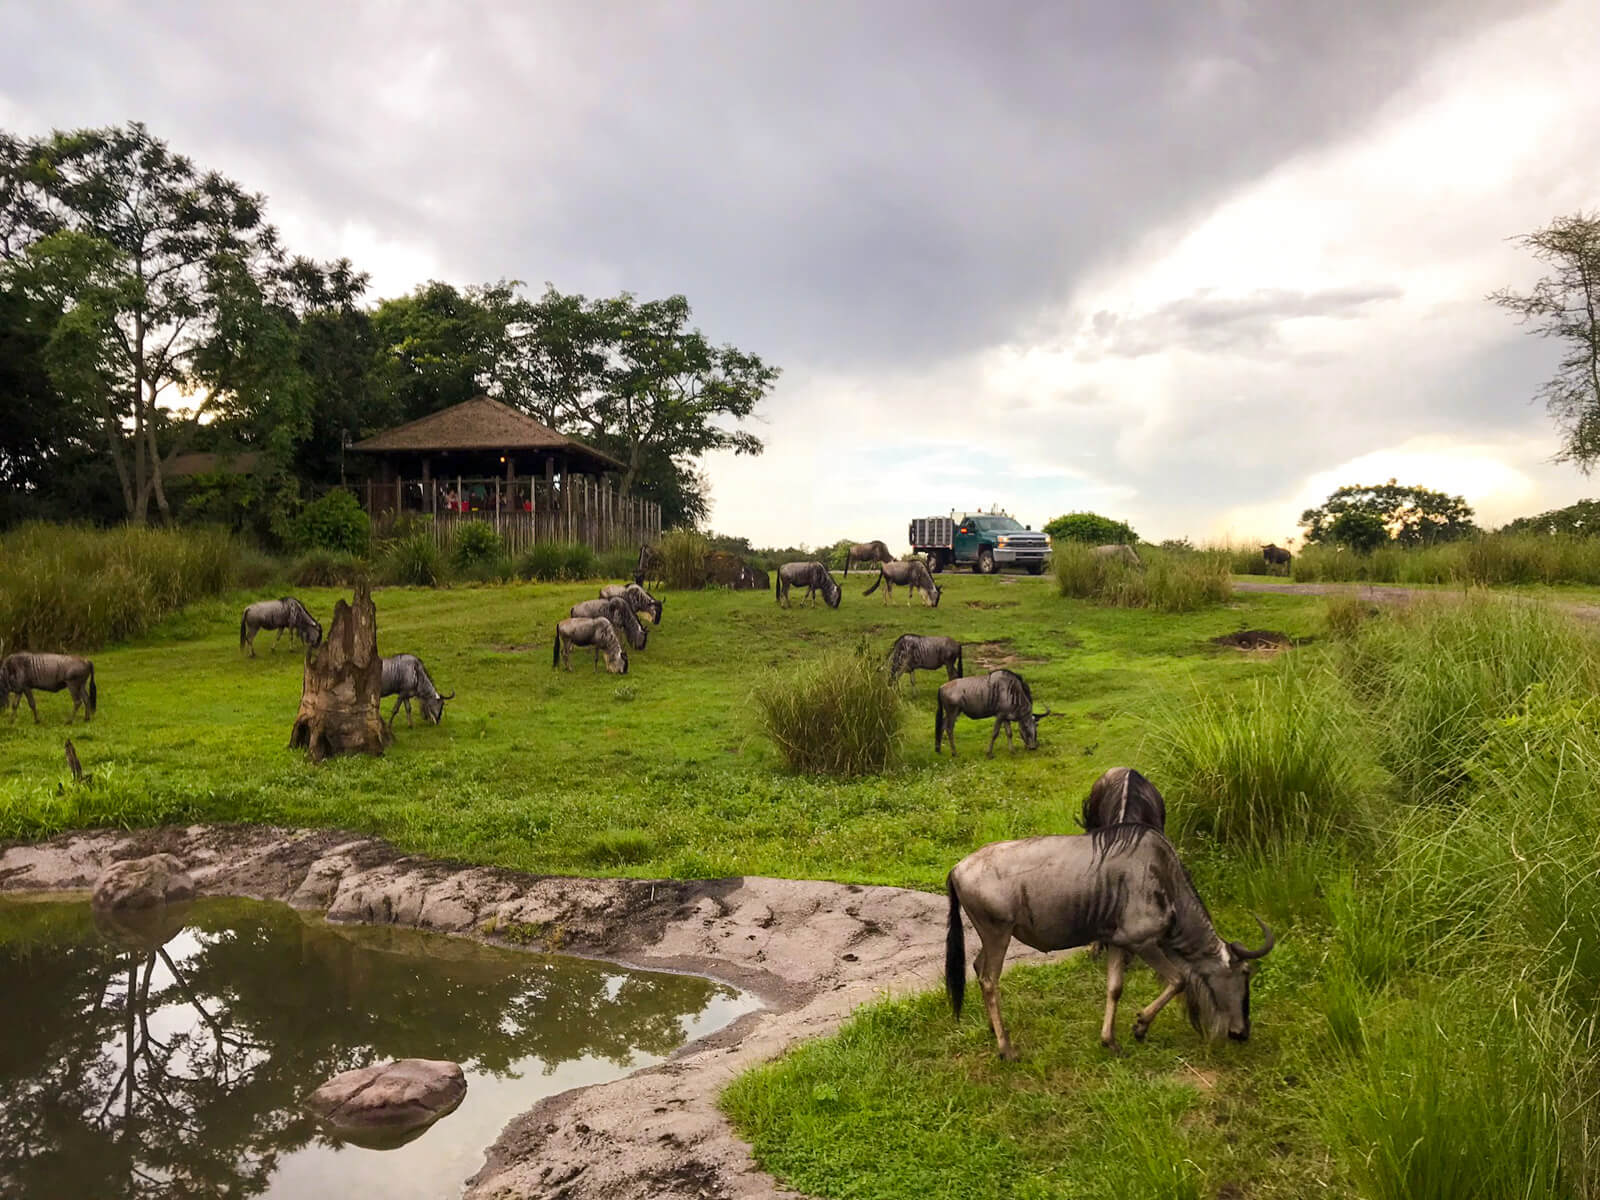 Grey horned creatures grazing in green grass on a cloudy day. In the foreground is a pond filled with dark green water.